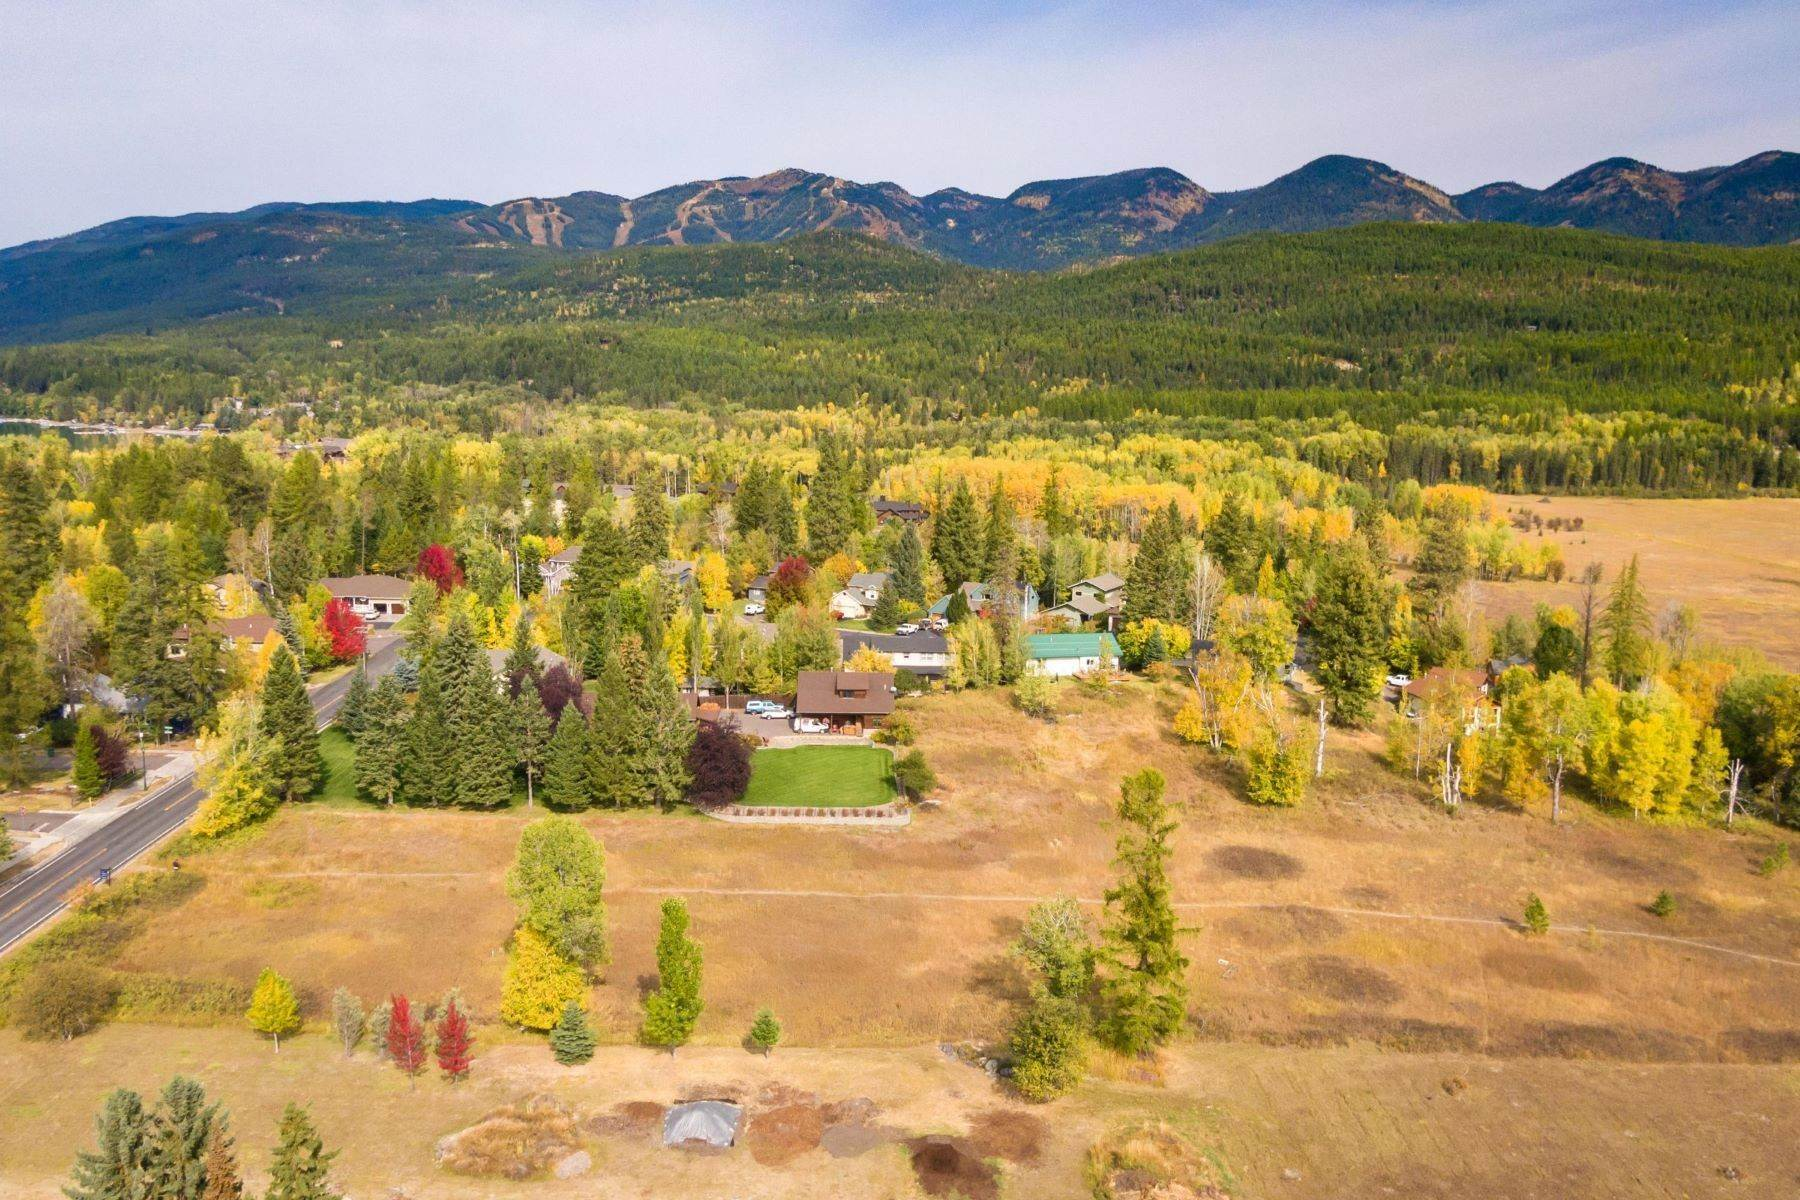 Land for Sale at 817 Colorado Avenue, Whitefish, MT, 59937 817 Colorado Avenue Whitefish, Montana 59937 United States